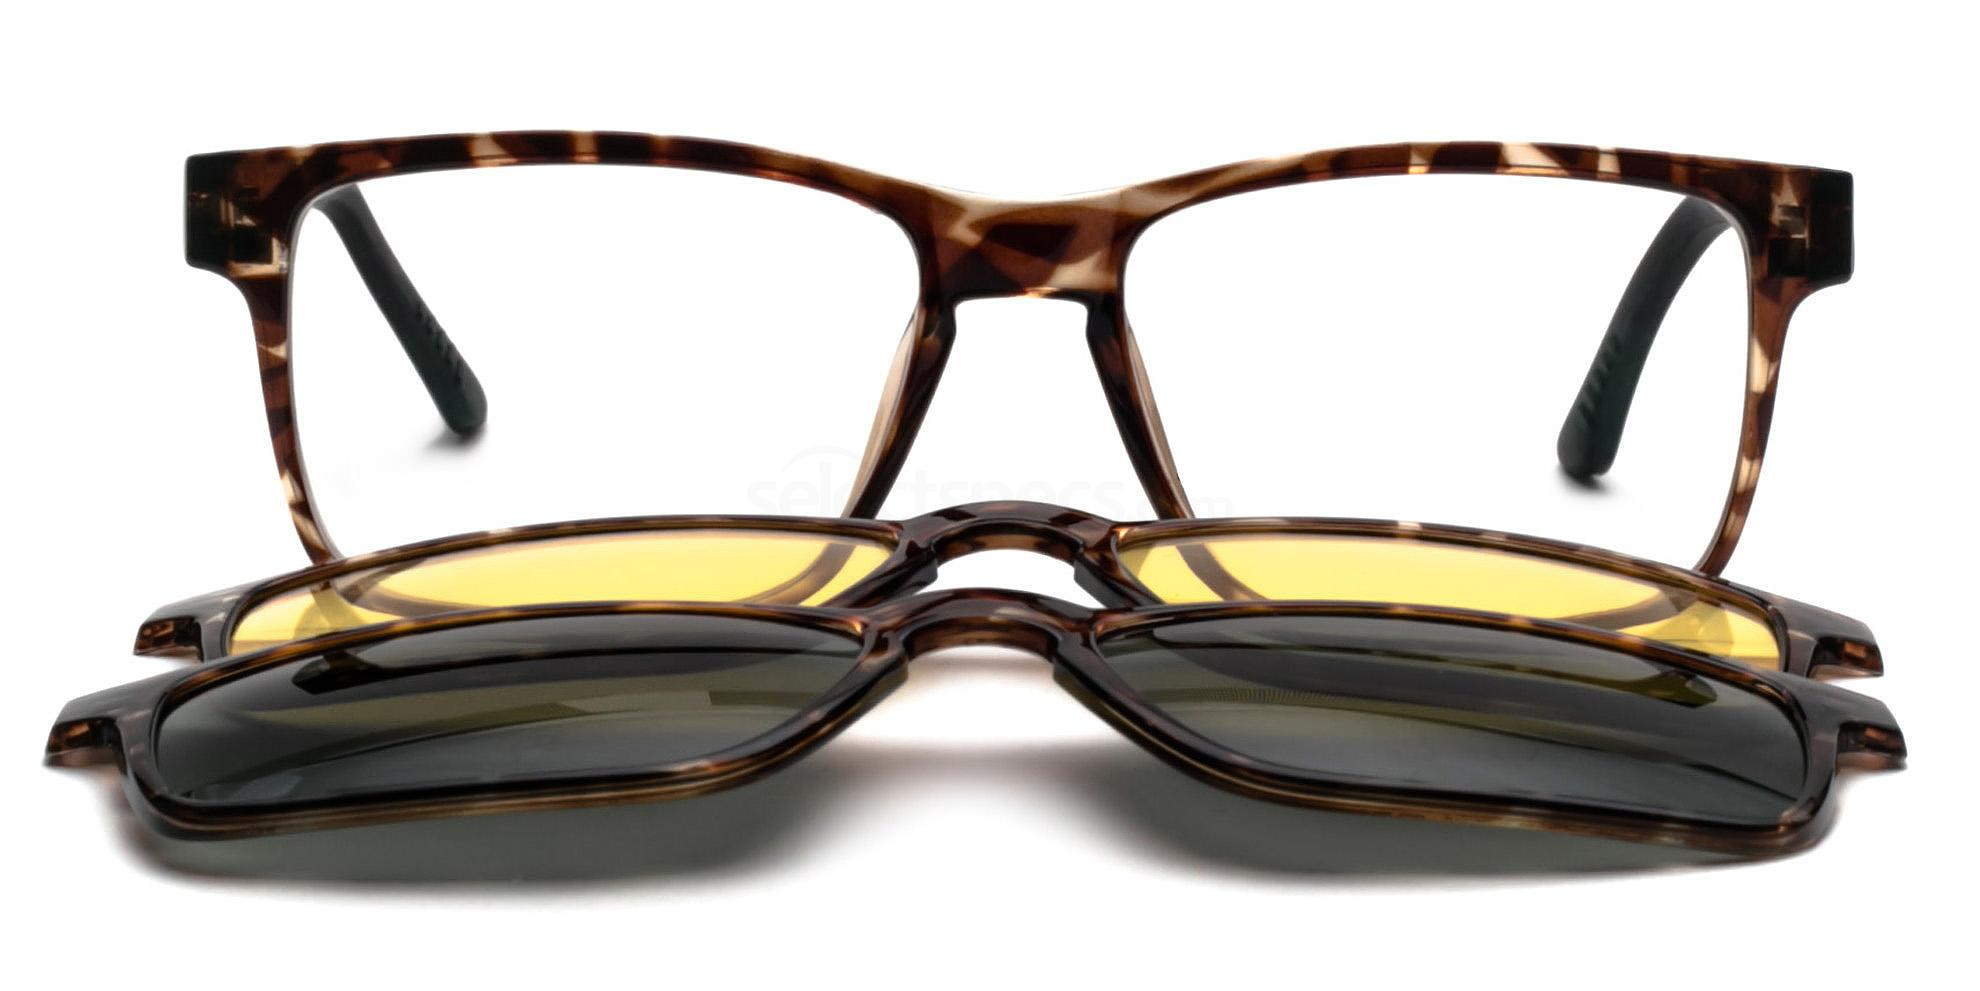 C3 5133 with 2X Magnetic, Polarised, Sunglasses Clip-on's Glasses, Infinity